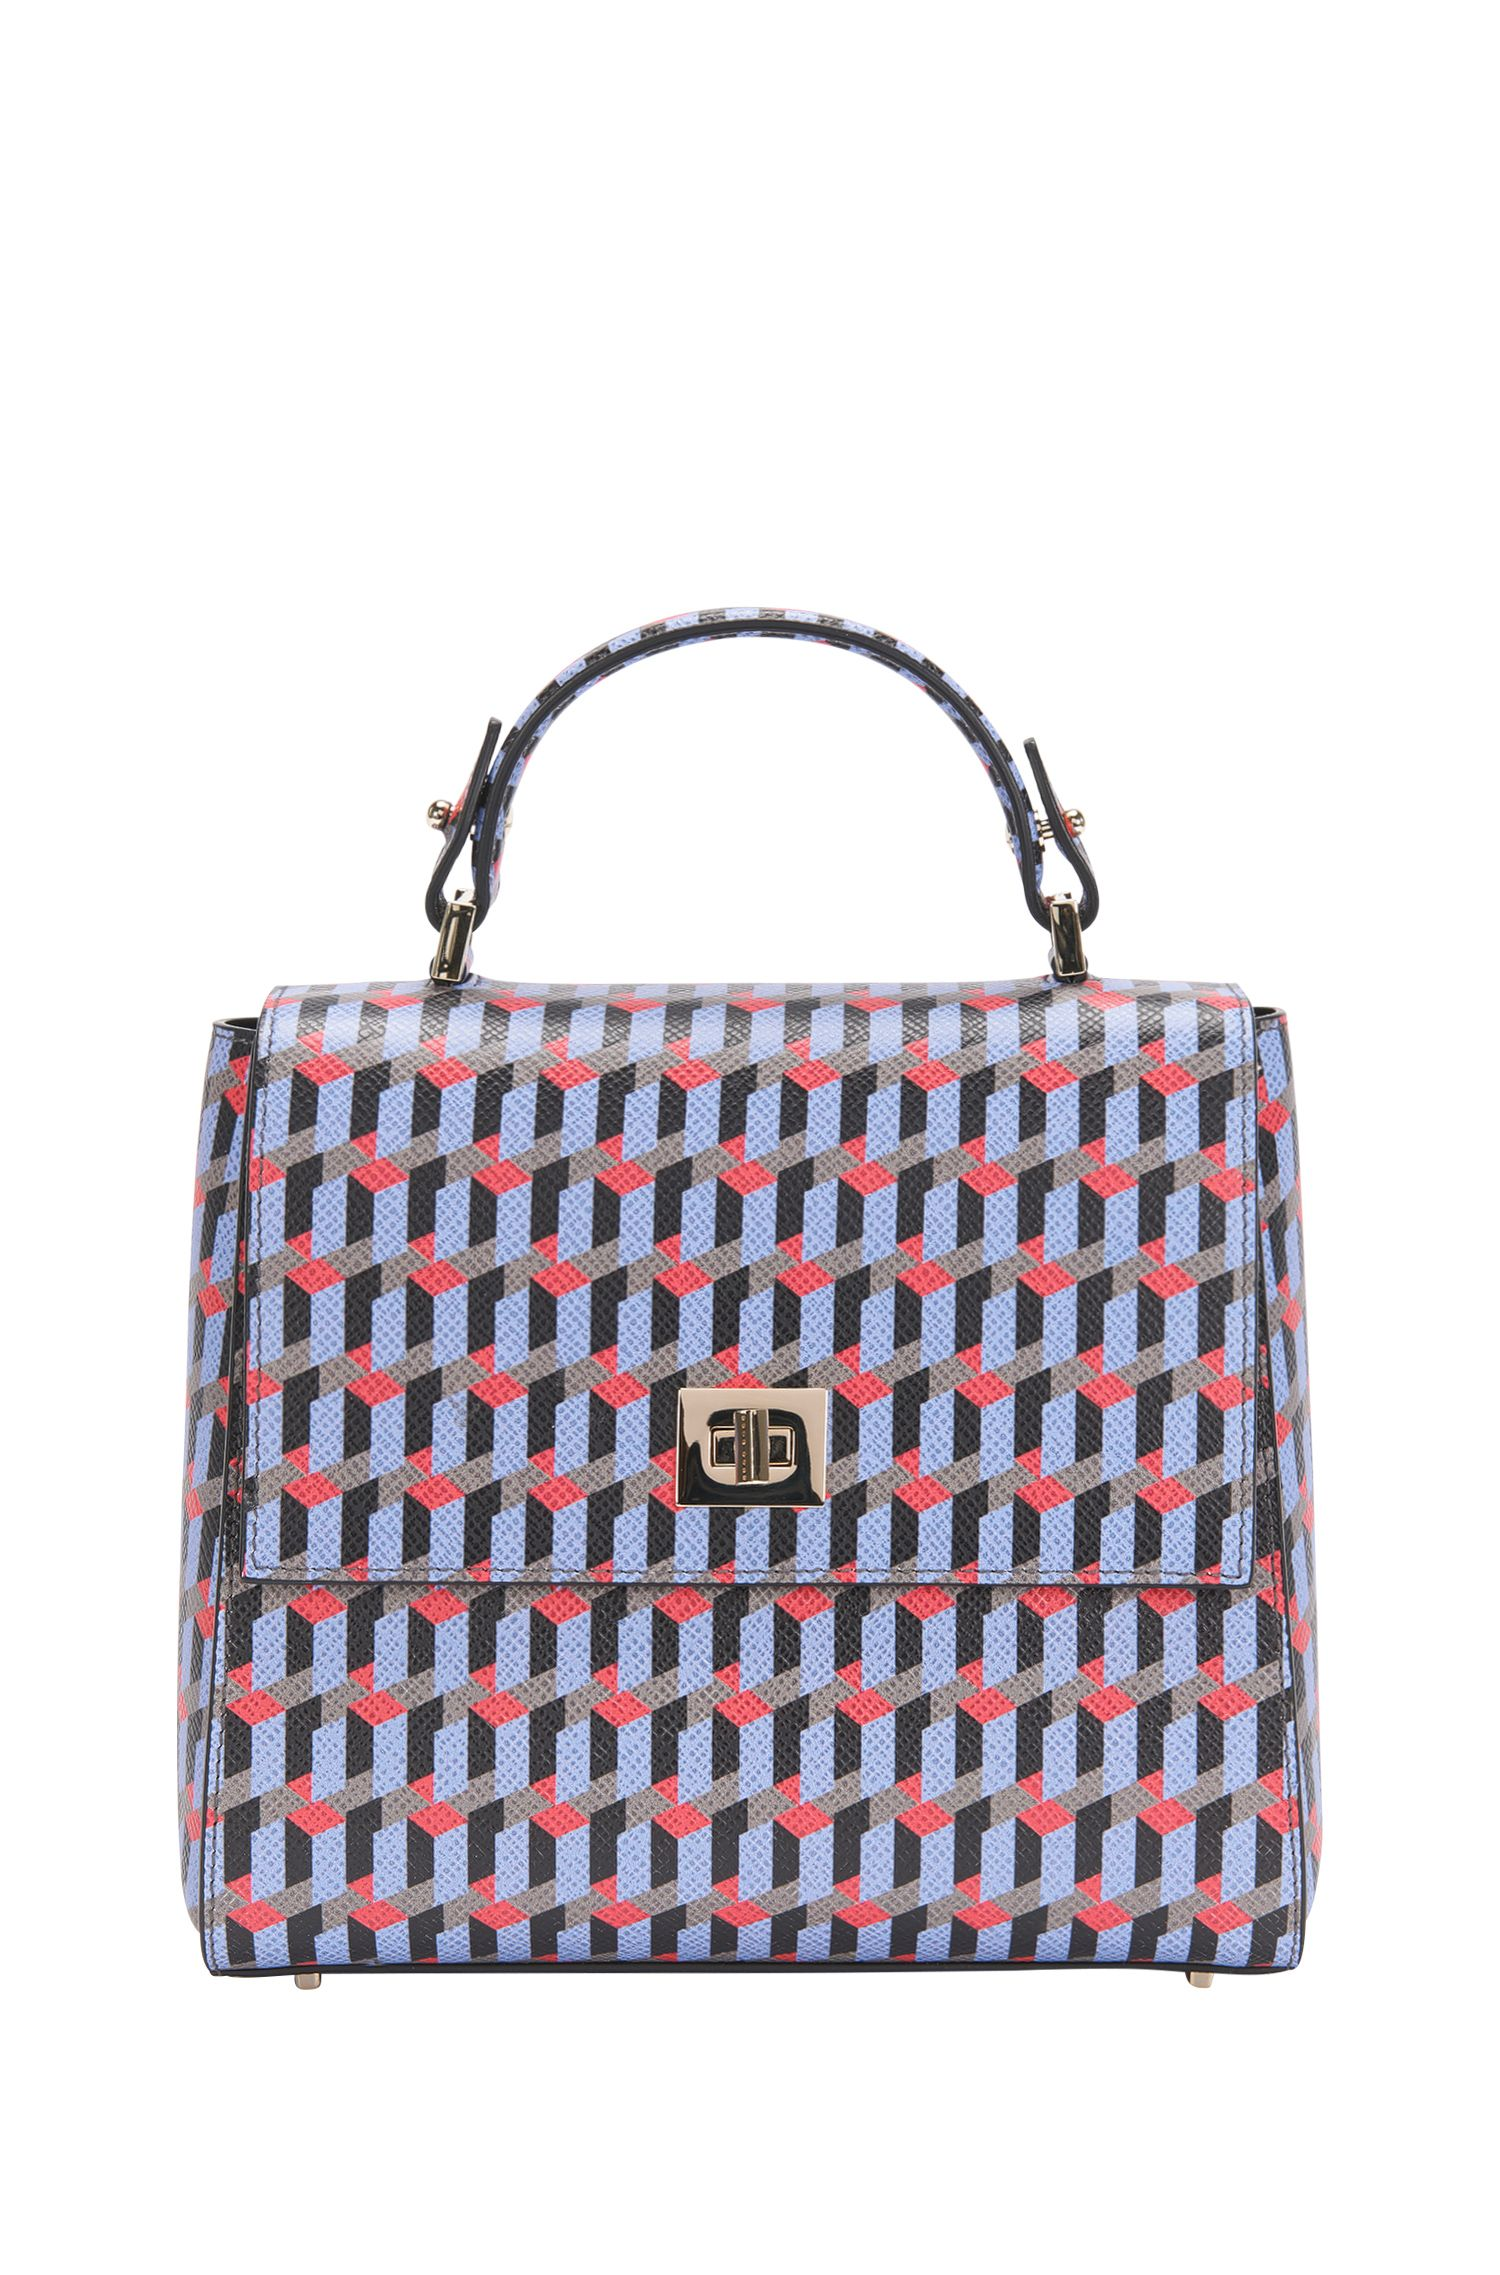 'Bespoke TH S FP' | Calfskin Printed Bag, Detachable Strap